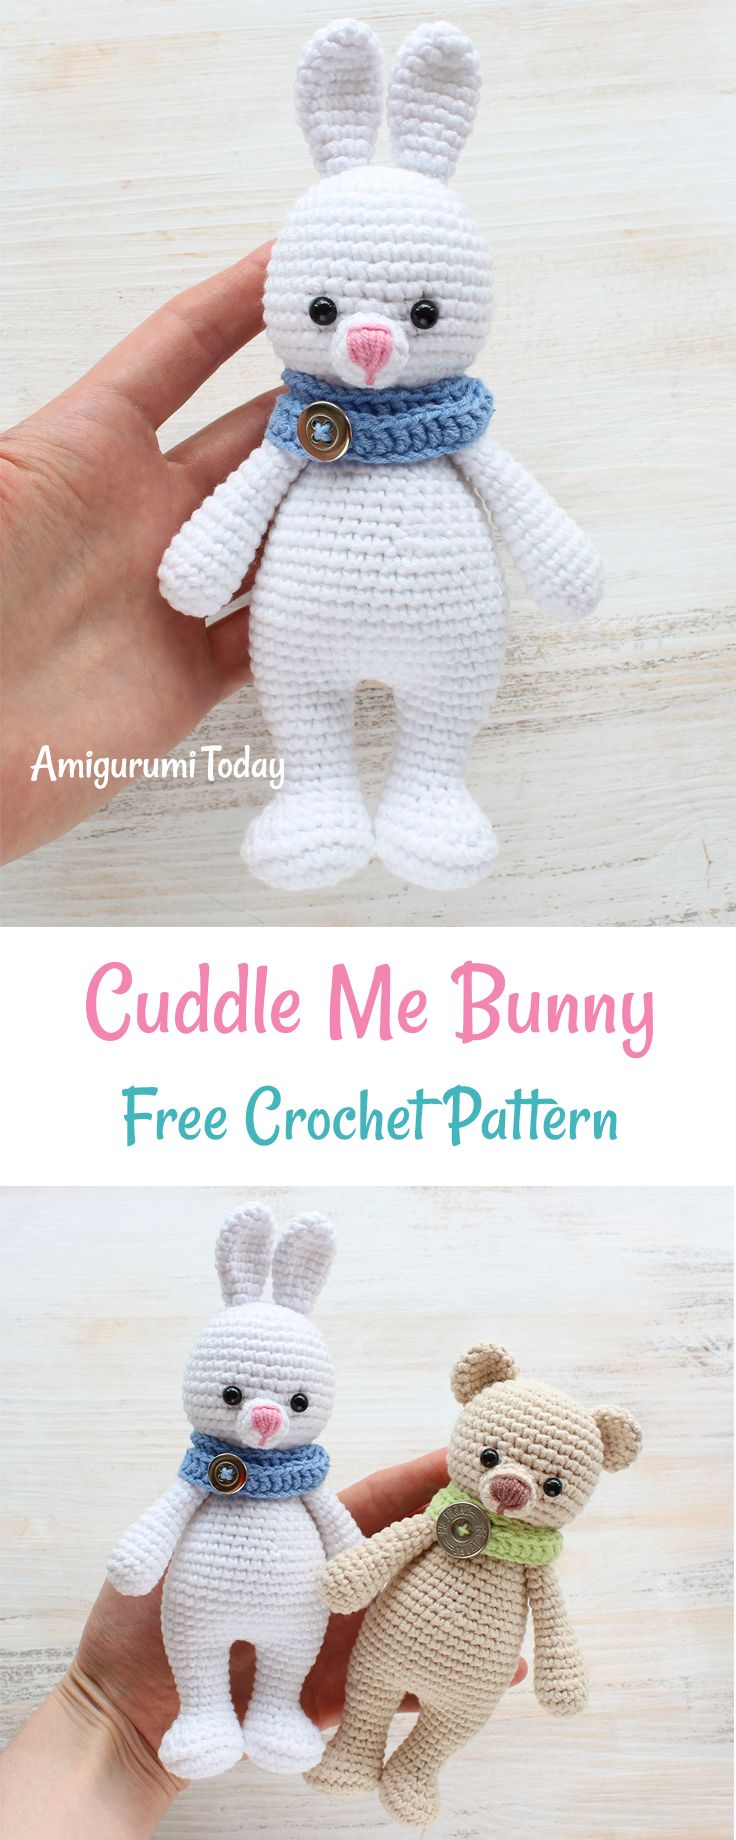 Who doesn\'t like cuddling? Soft crochet Cuddle Me Bunny is here to ...